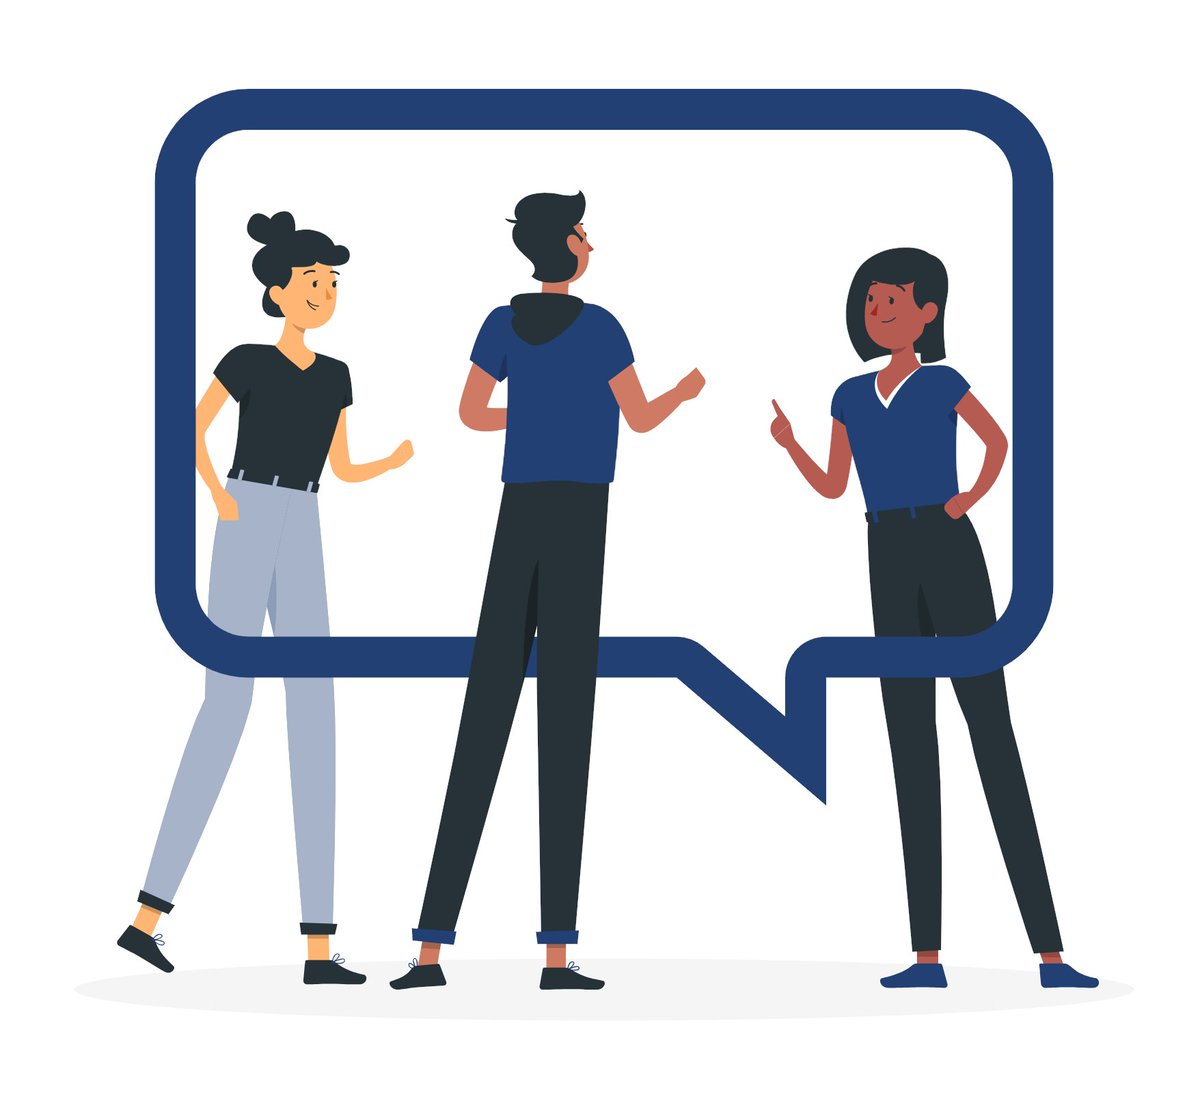 Want to help improve access to education and career planning? The Ministry of Advanced Education & Skills Training is looking for students to provide feedback on how we can better serve you. Join the discussion -> https://t.co/koYE0YR10R https://t.co/8wf64mfxWX